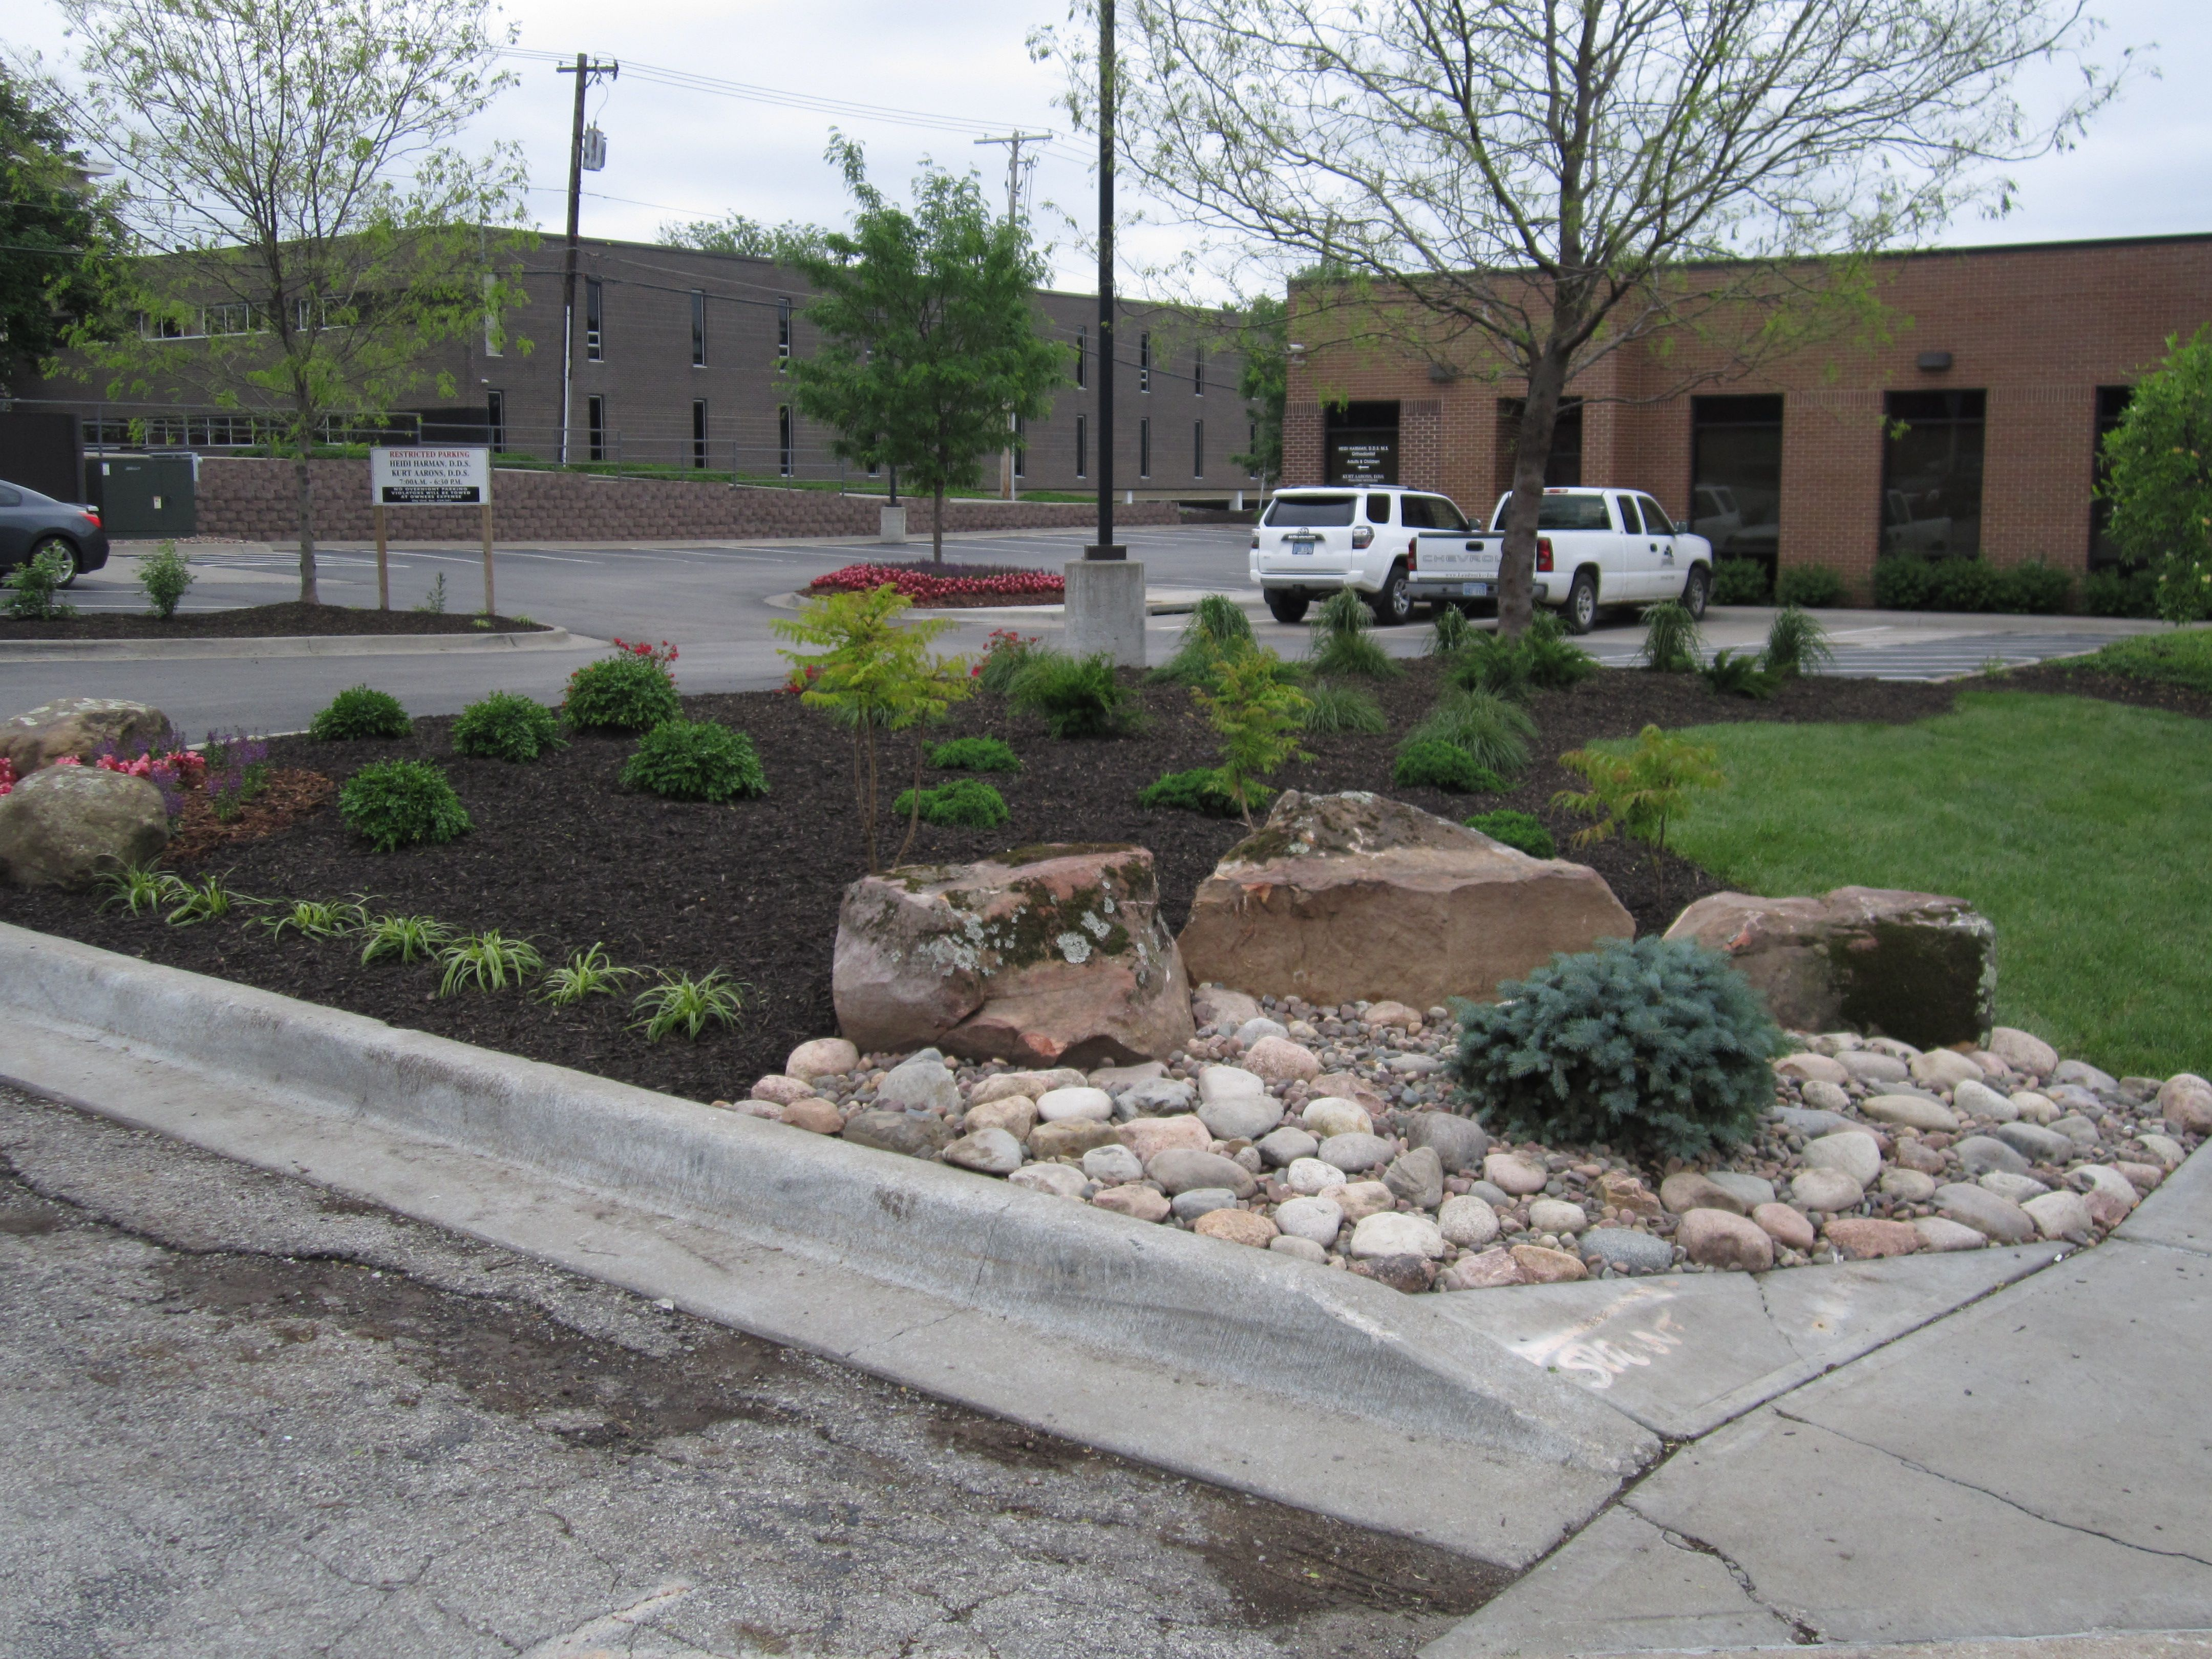 Landscaping Commercial Property Renovation Lawn Care Companies Lawn Care Landscape